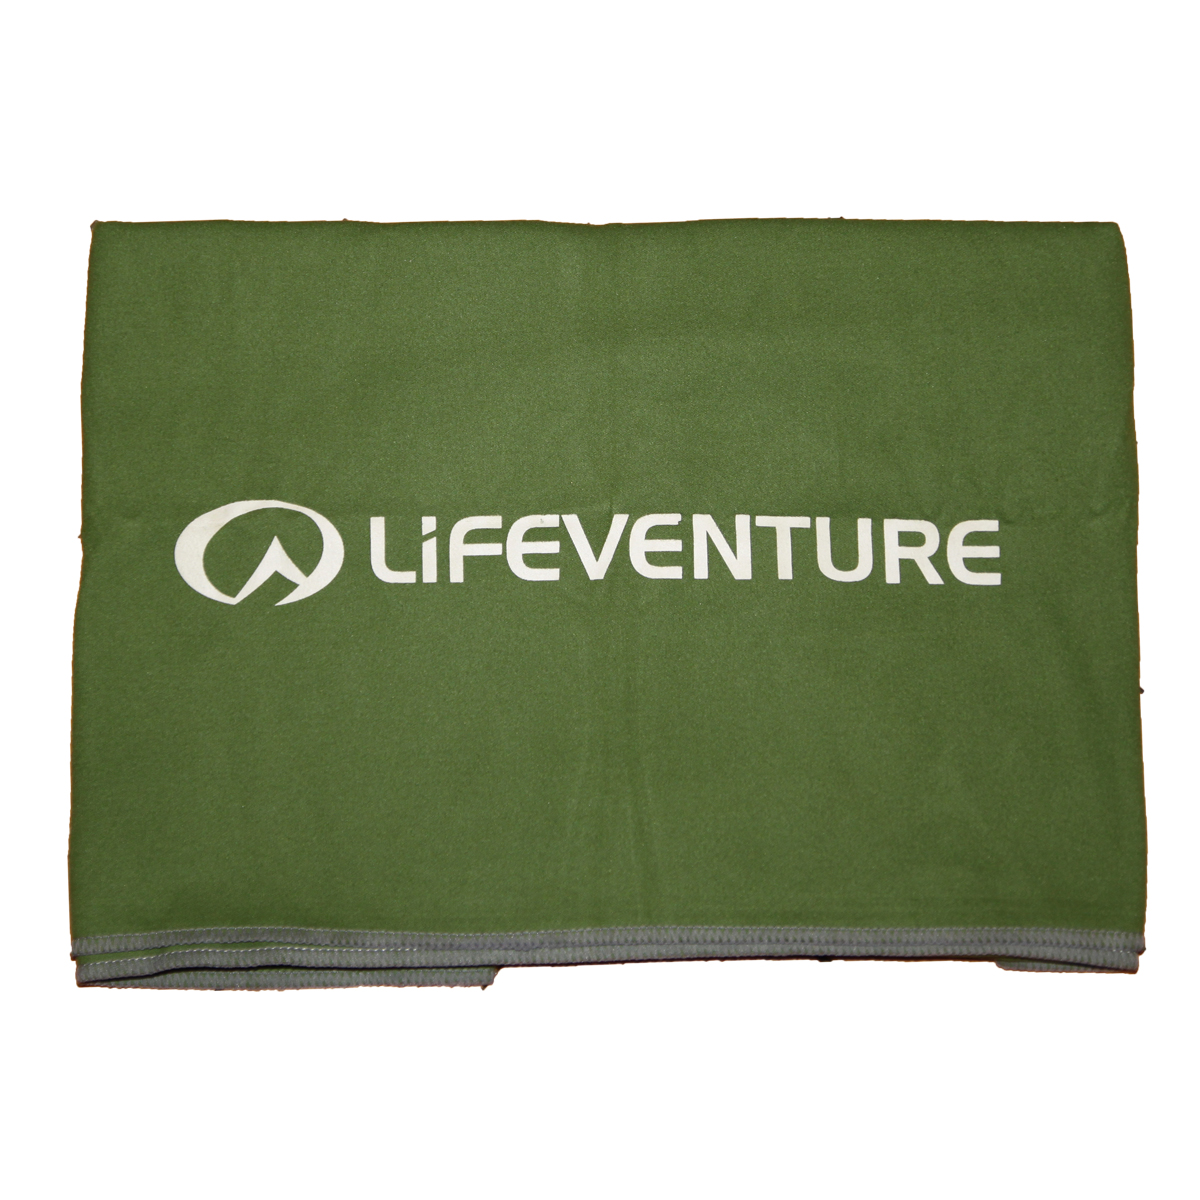 Lifeventure Compact Trek Towel green - 2